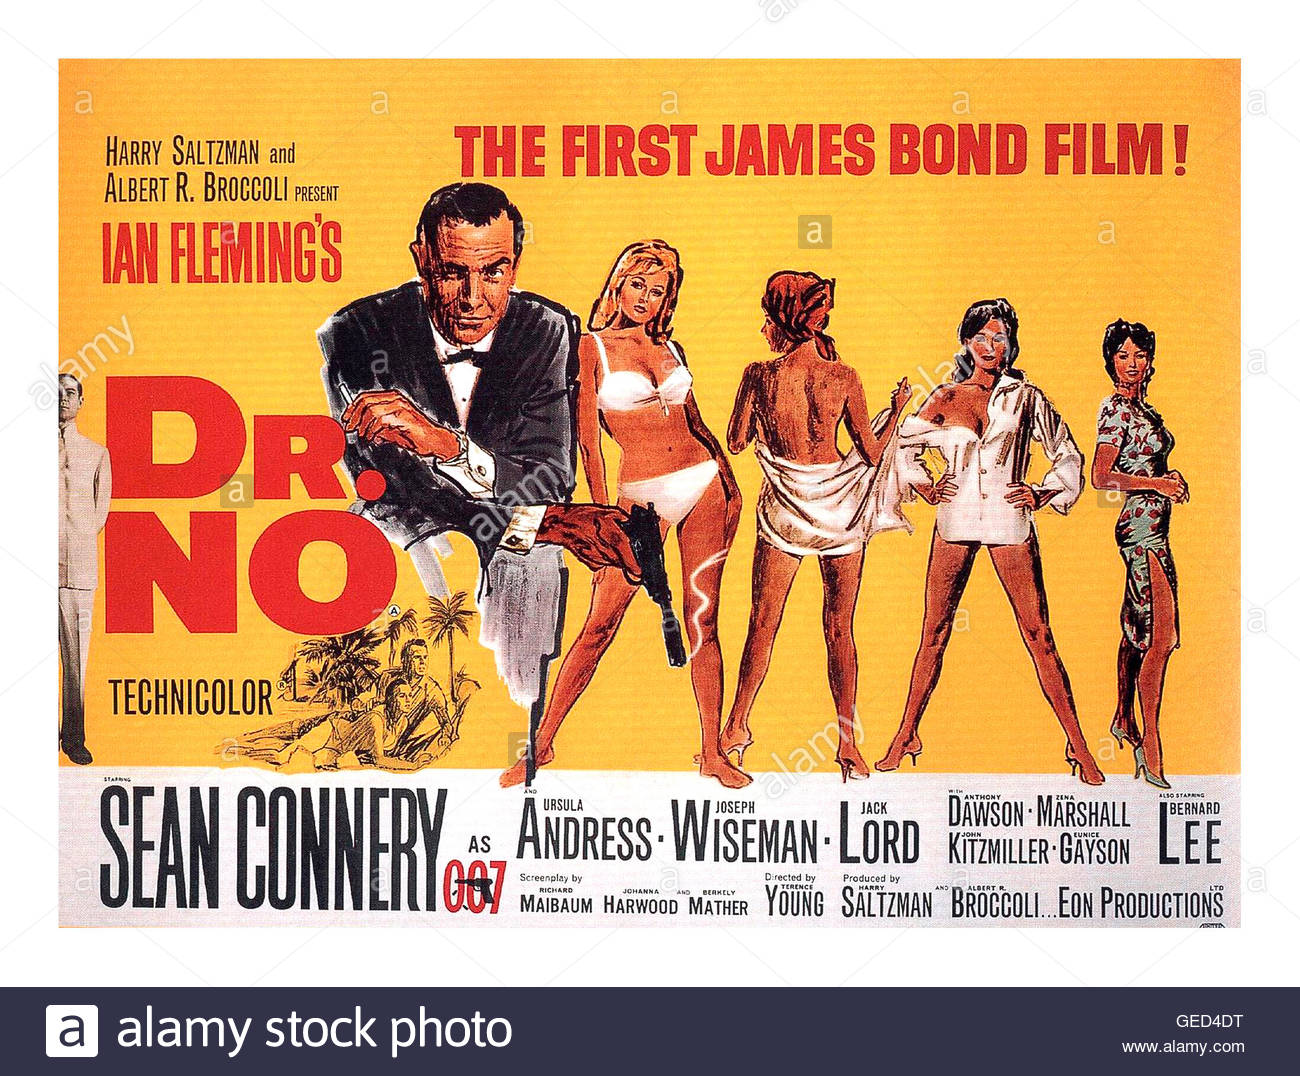 Dr. No is a 1962 British spy film, starring Sean Connery, with Ursula Andress and Joseph Wiseman, filmed in Jamaica - Stock Image